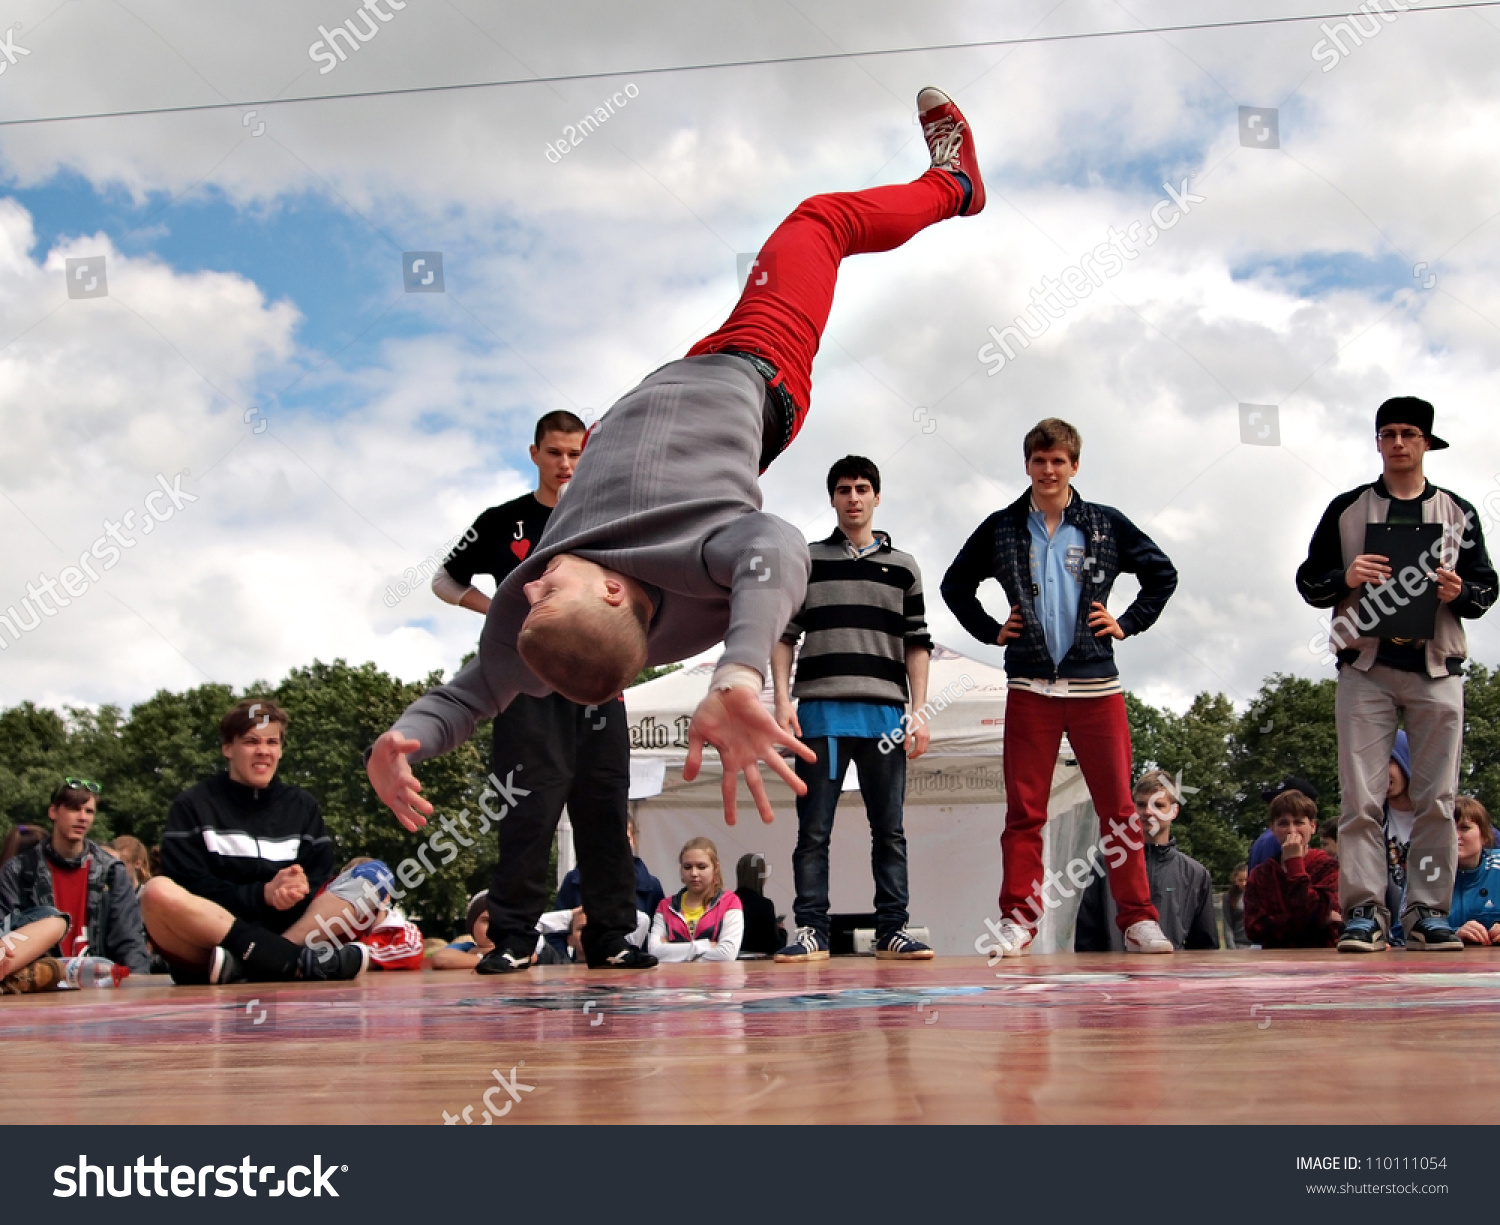 Jekabpils Latvia June 2 An Unidentified B Boy Breakdances Battle At An Dance Competitions Ghetto Games On June 2 2012 In Jekabpils Latvia Image